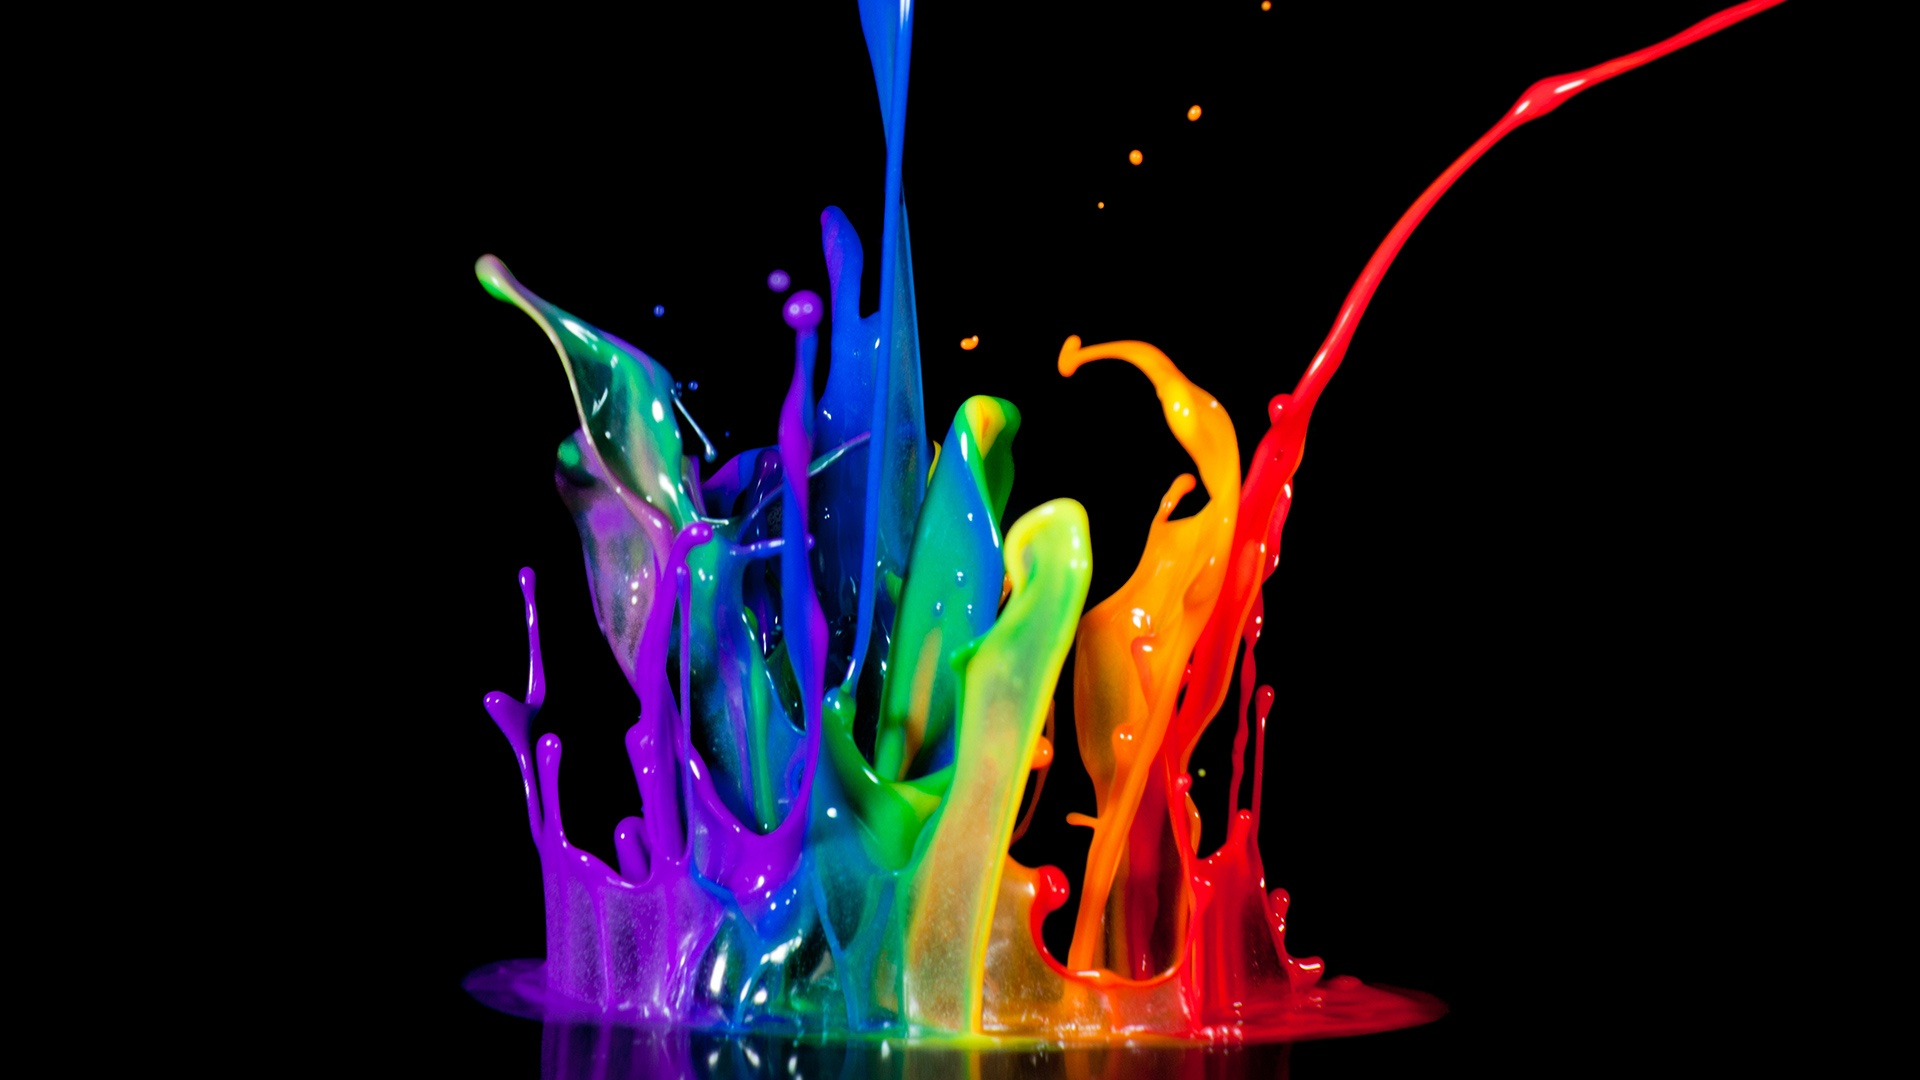 Colors splash colorful wallpapers  HD Wallpapers Rocks 1920x1080